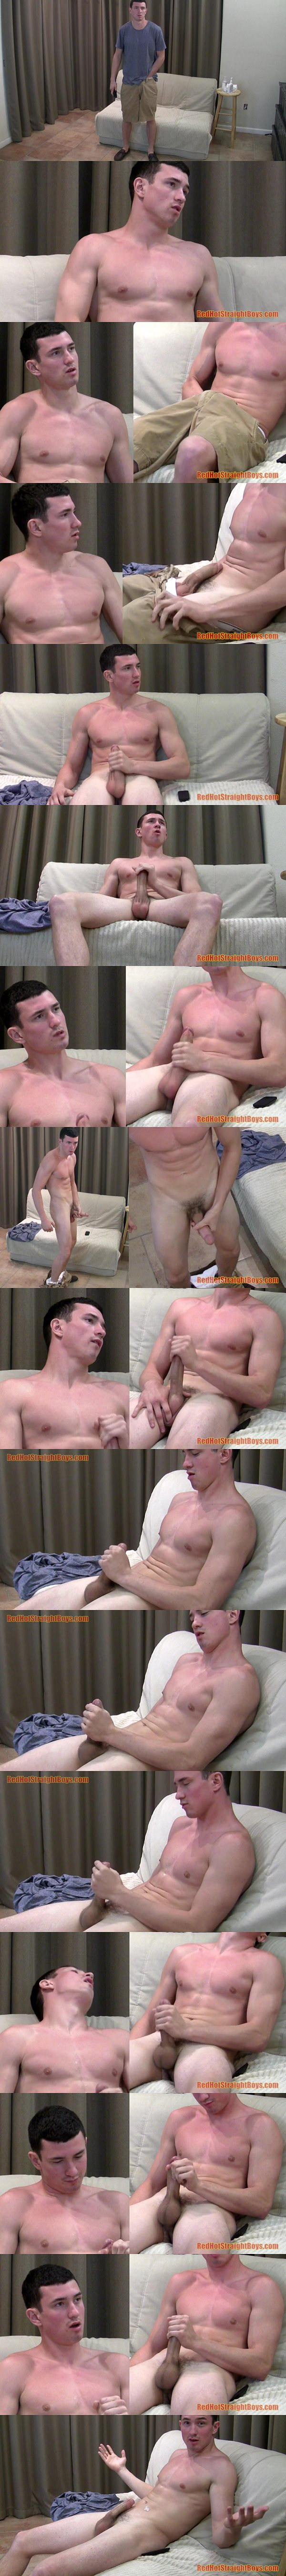 Tall muscular straight boy Anthony Slater jerks off at Redhotstraightboys